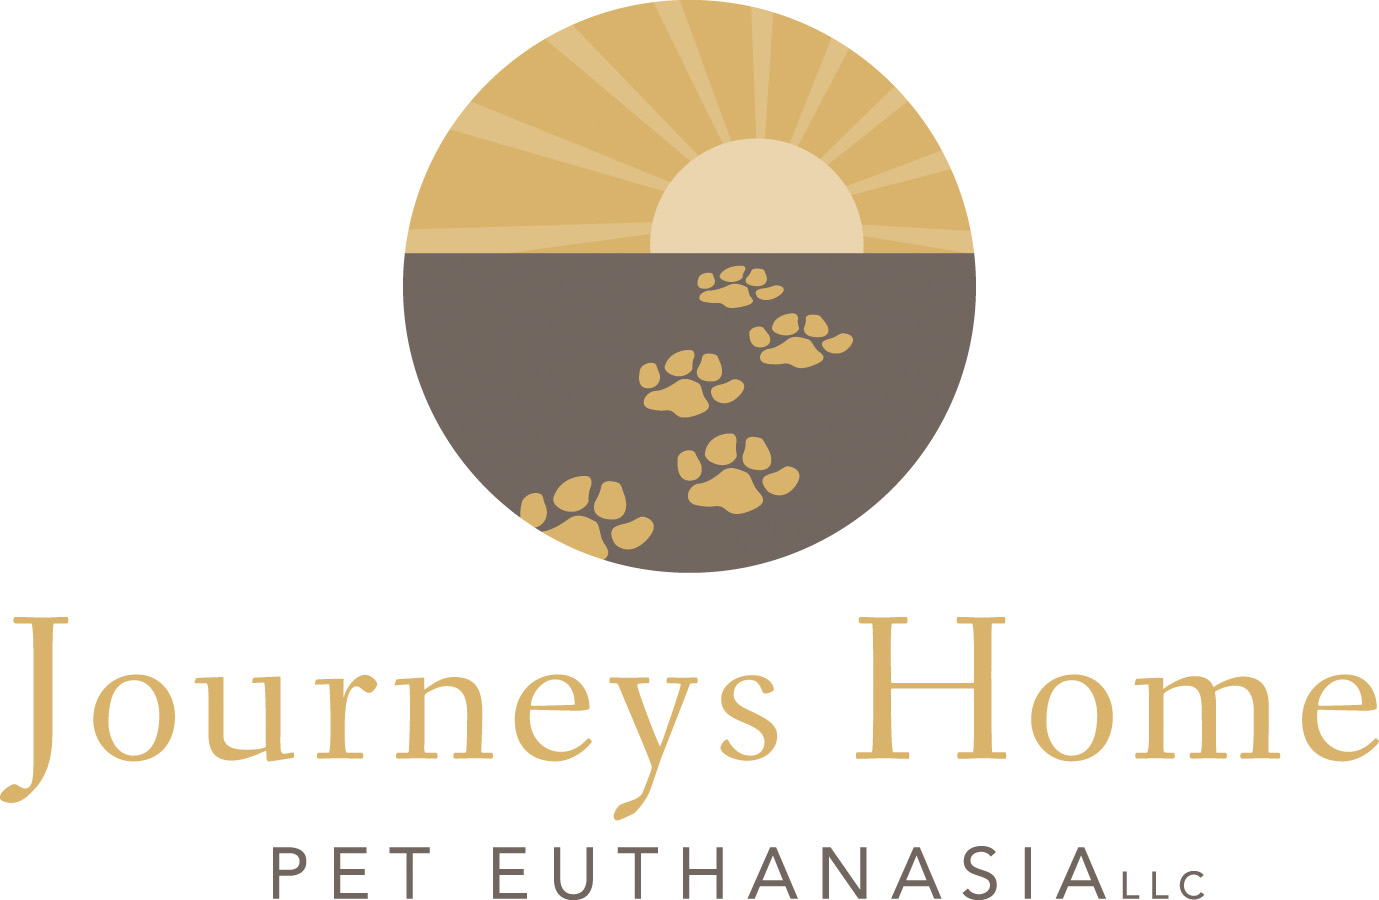 Journeys Home Pet Euthanasia